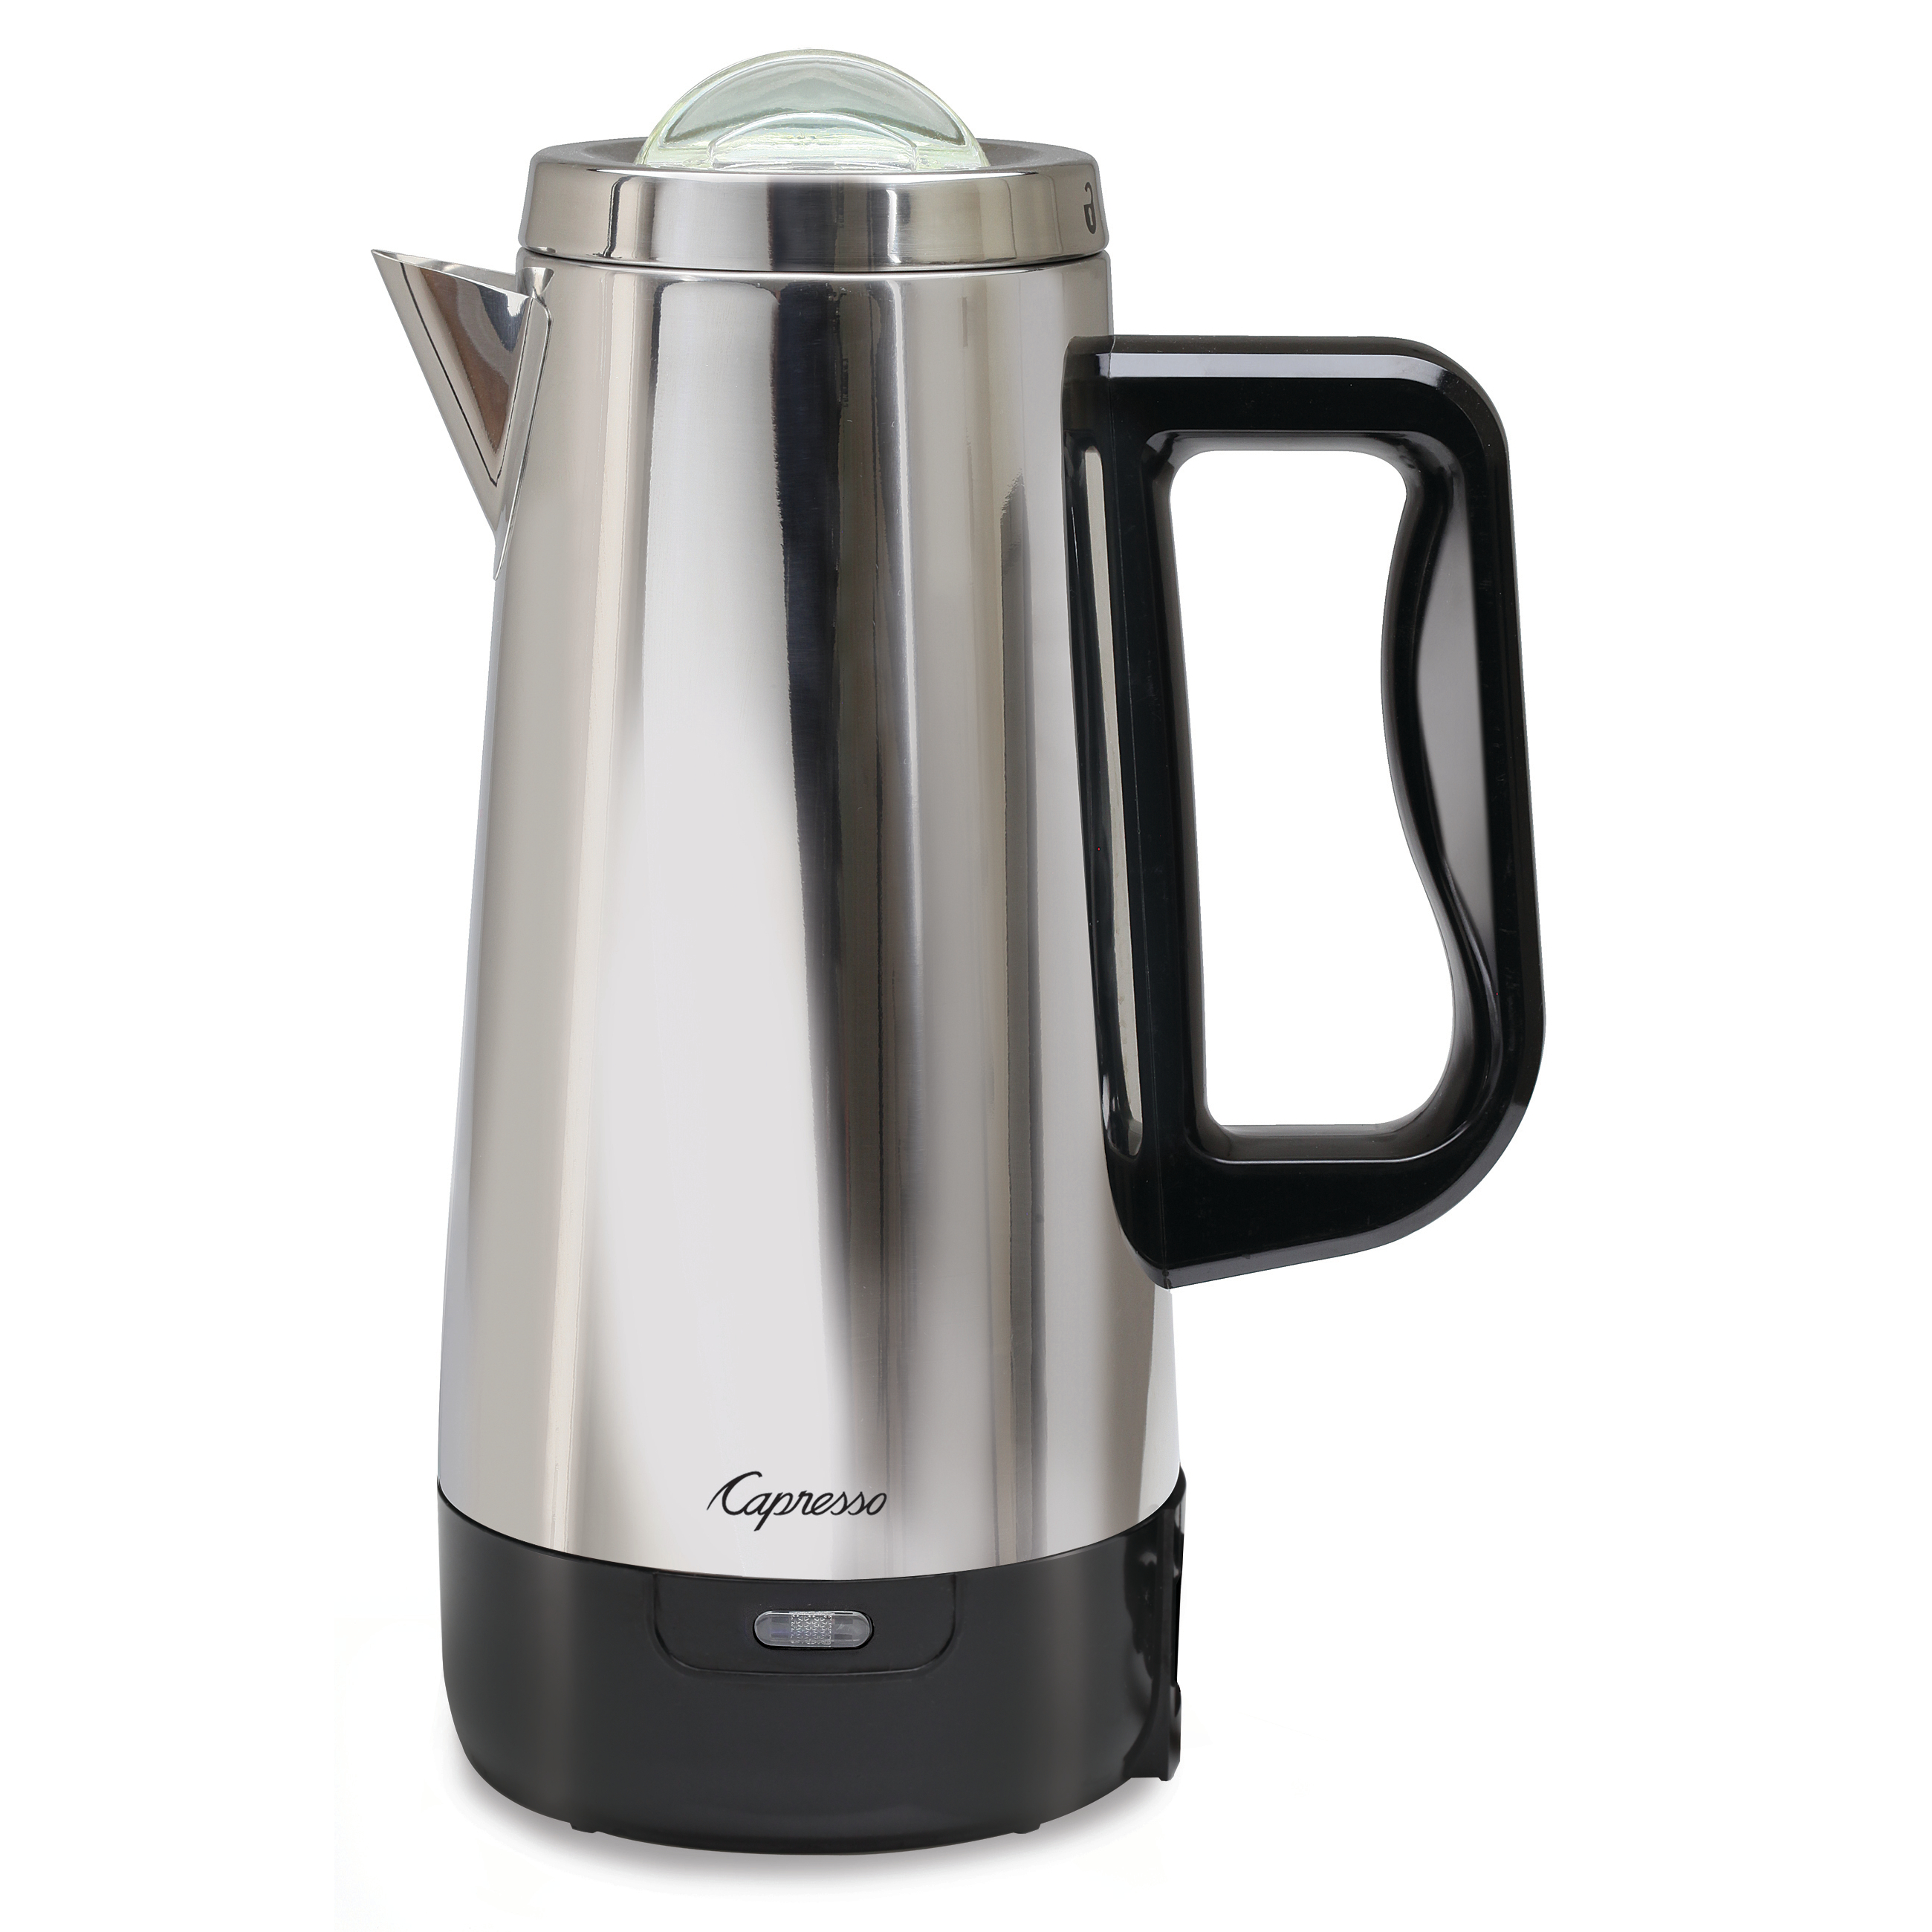 Capresso Stainless Steel 12 Cup Percolator